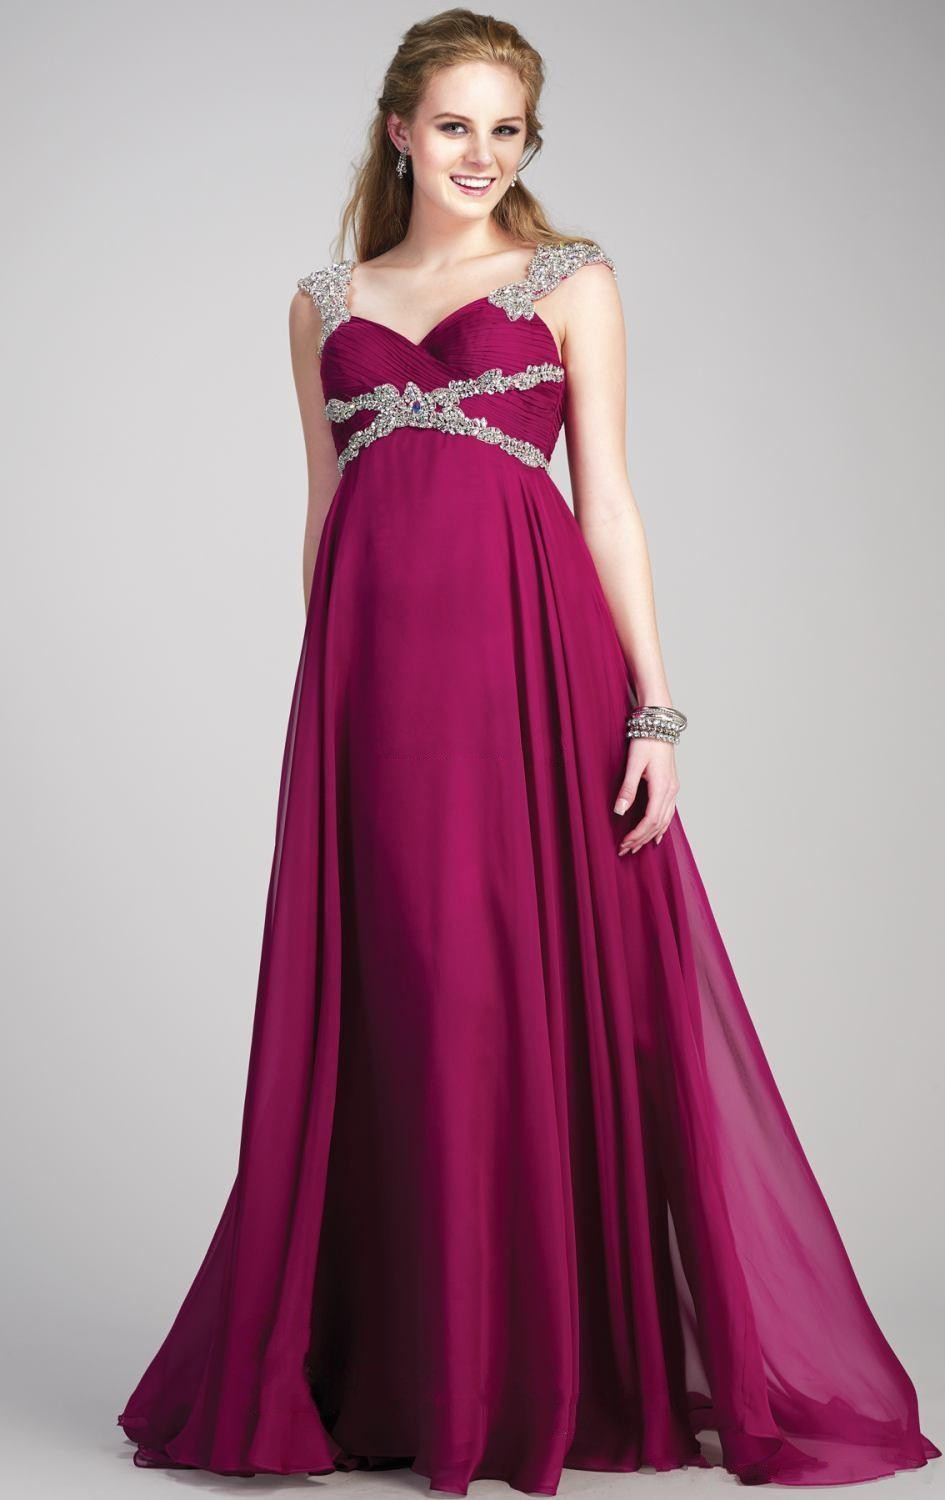 Spring Women Summer Beading Chiffon For Pregnant Sweetheart Maternity Prom Gowns A Line Plus Size 2018 bridesmaid dresses in Bridesmaid Dresses from Weddings Events